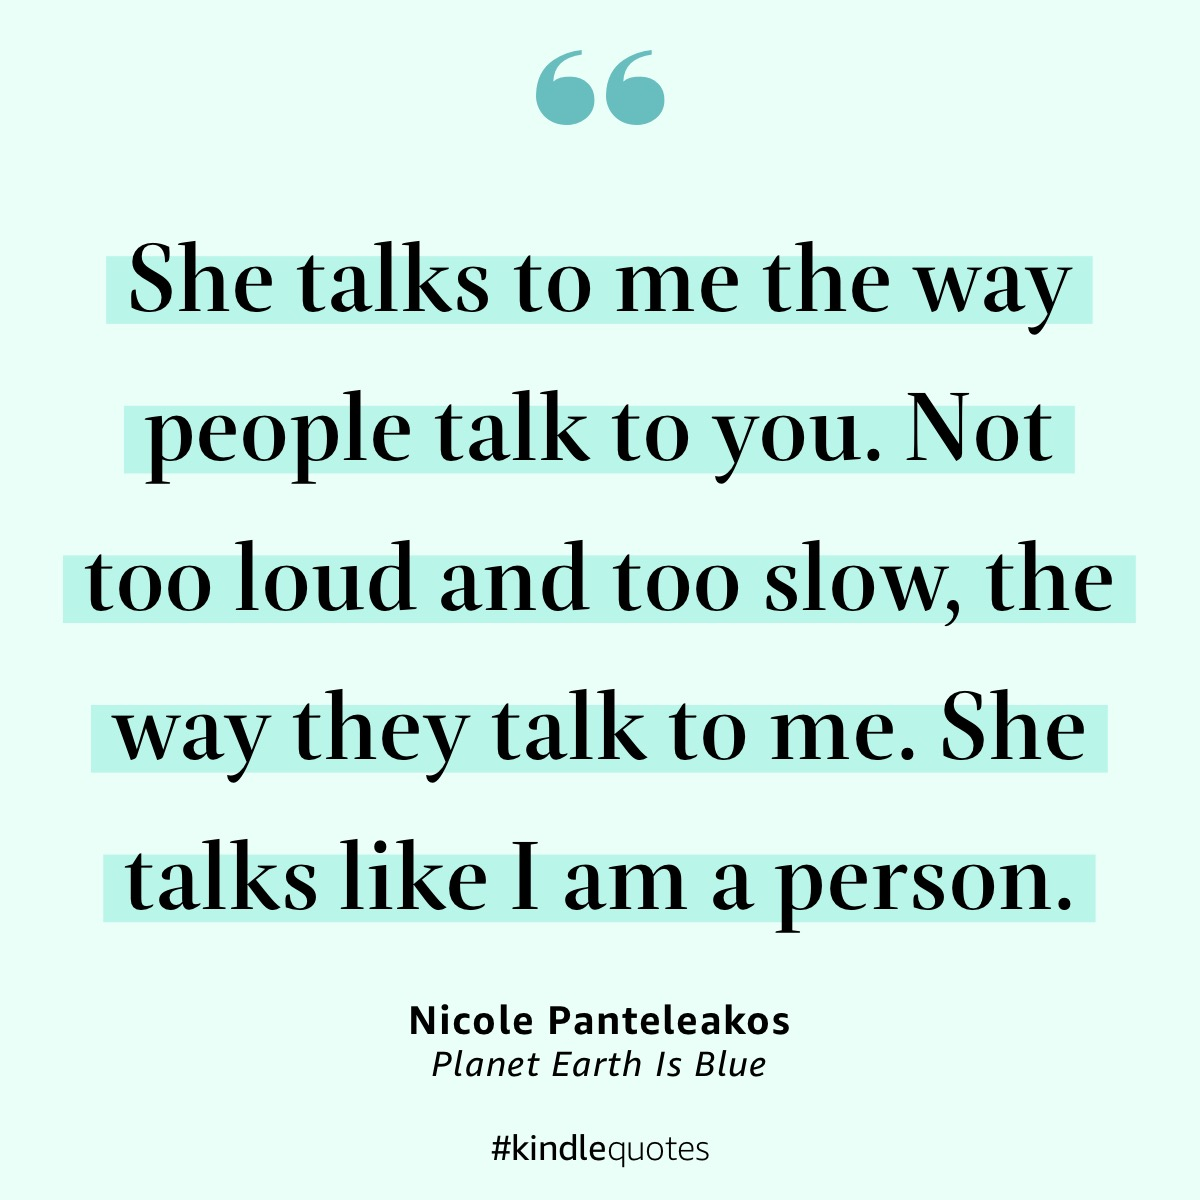 """She talks to me the way people talk to you. Not too loud and too slow, the way they talk to me. She talks like I am a person."" -Nicole Panteleakos, Planet Earth Is Blue"